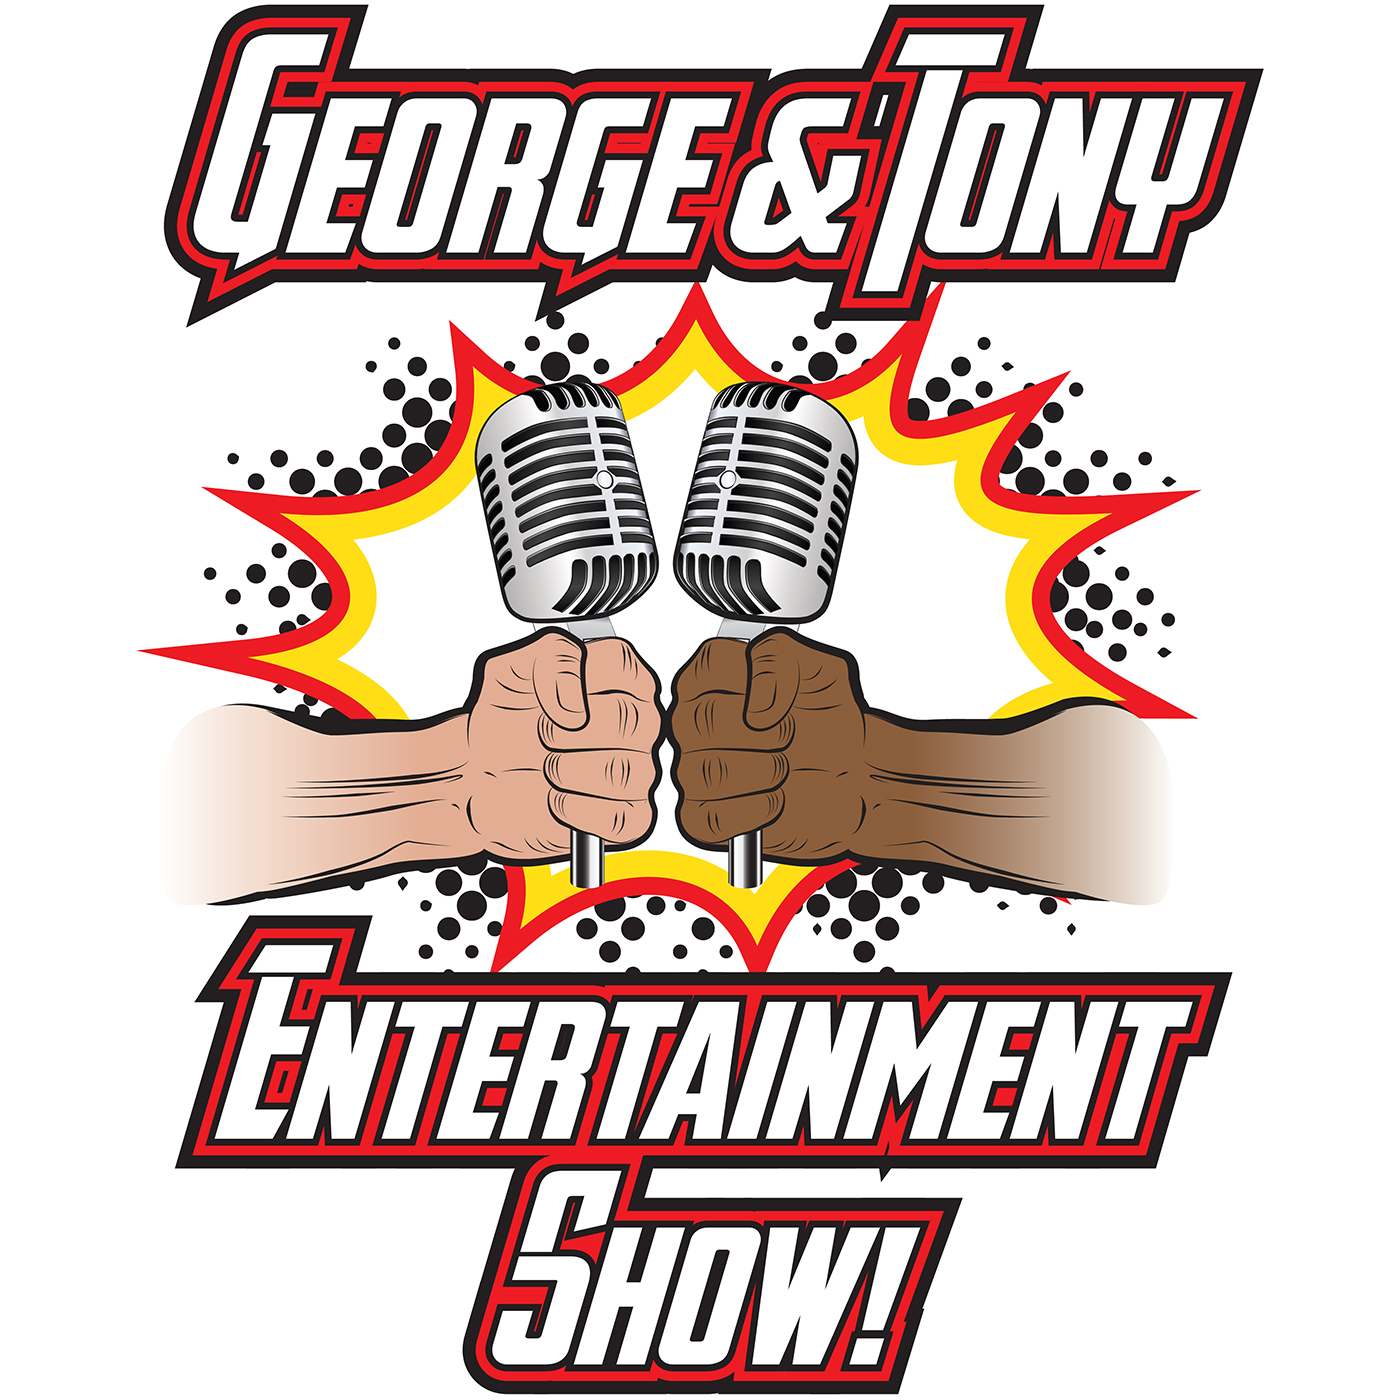 George and Tony Entertainment Show #37